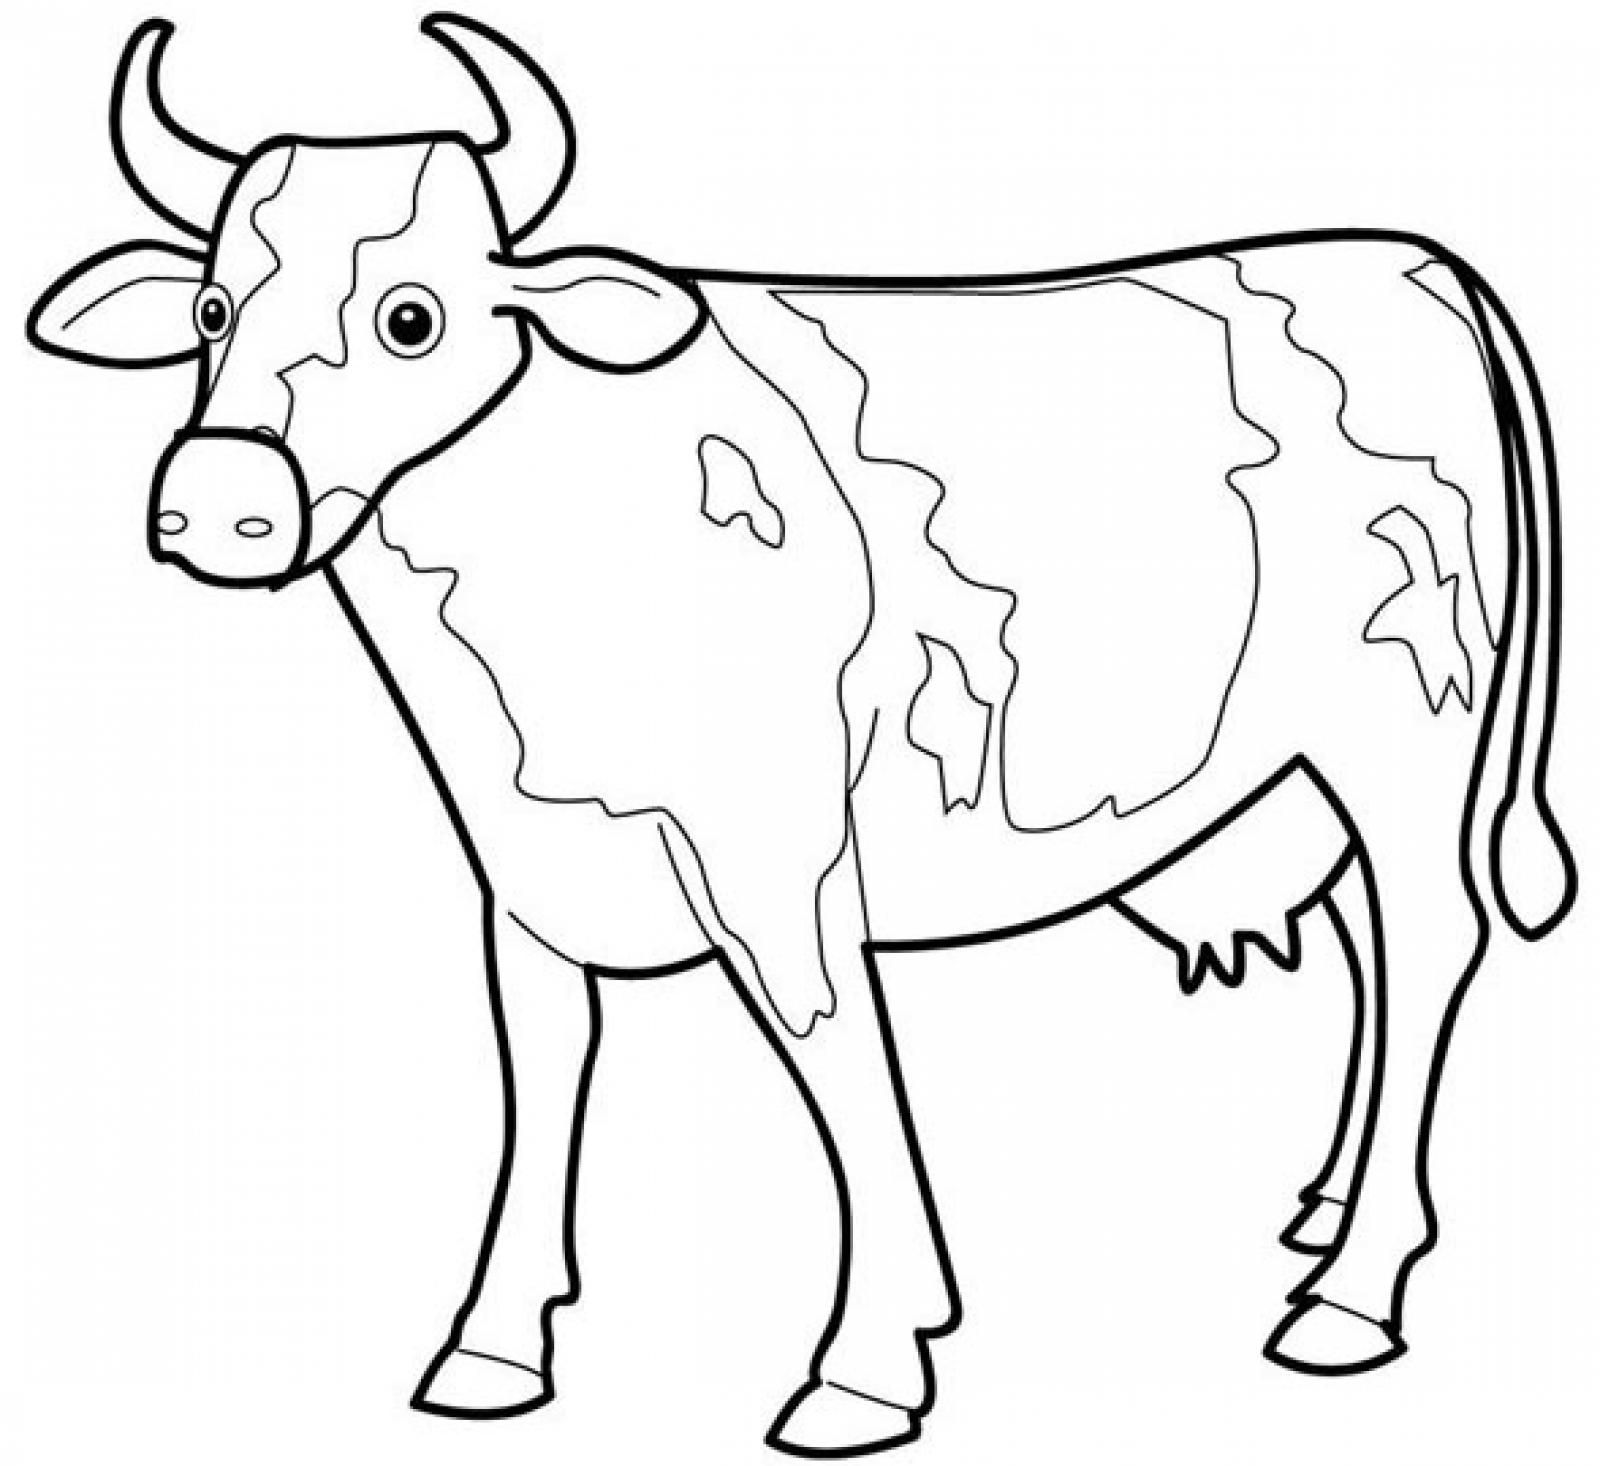 cow coloring pics cow coloring page super simple coloring pics cow